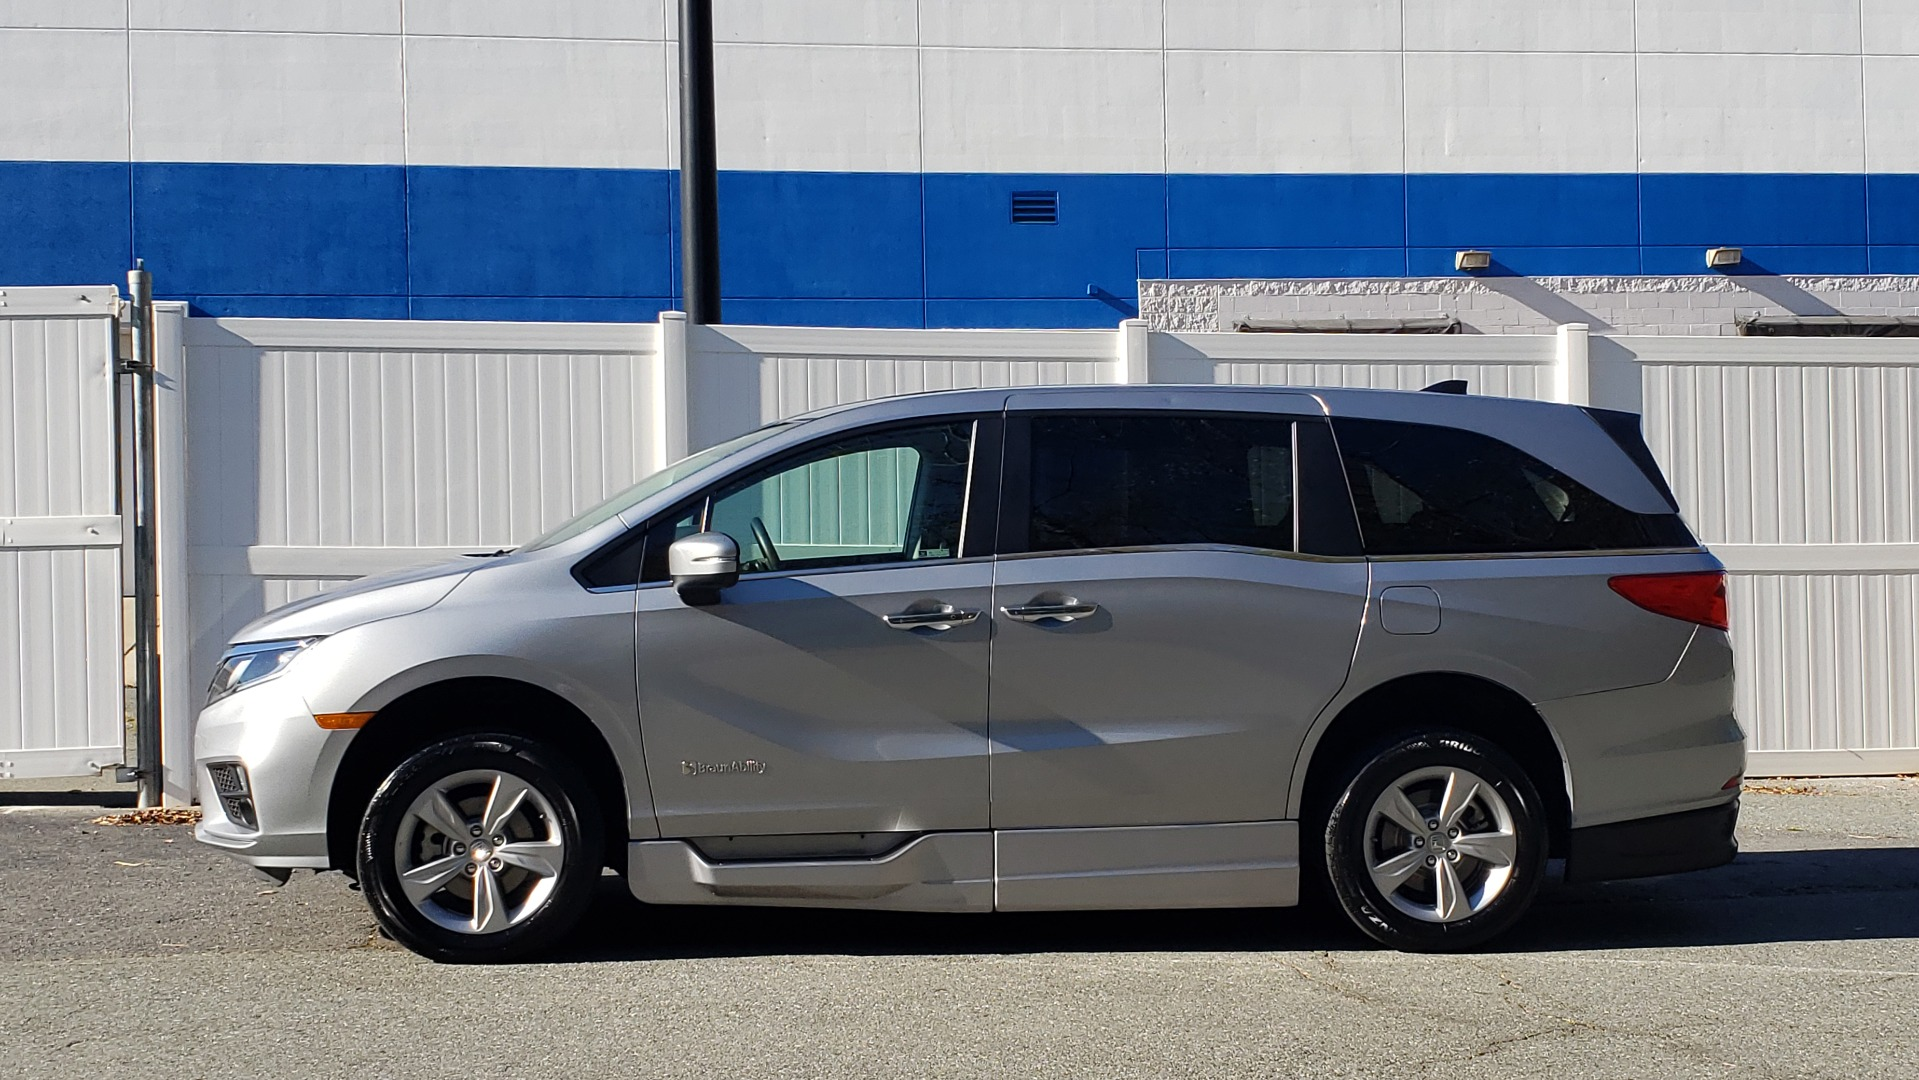 Used 2019 Honda ODYSSEY EX-L BRAUNABILITY / NAV / RES / LKA / BLUE-RAY / SUNROOF / REARVIEW for sale $49,999 at Formula Imports in Charlotte NC 28227 2